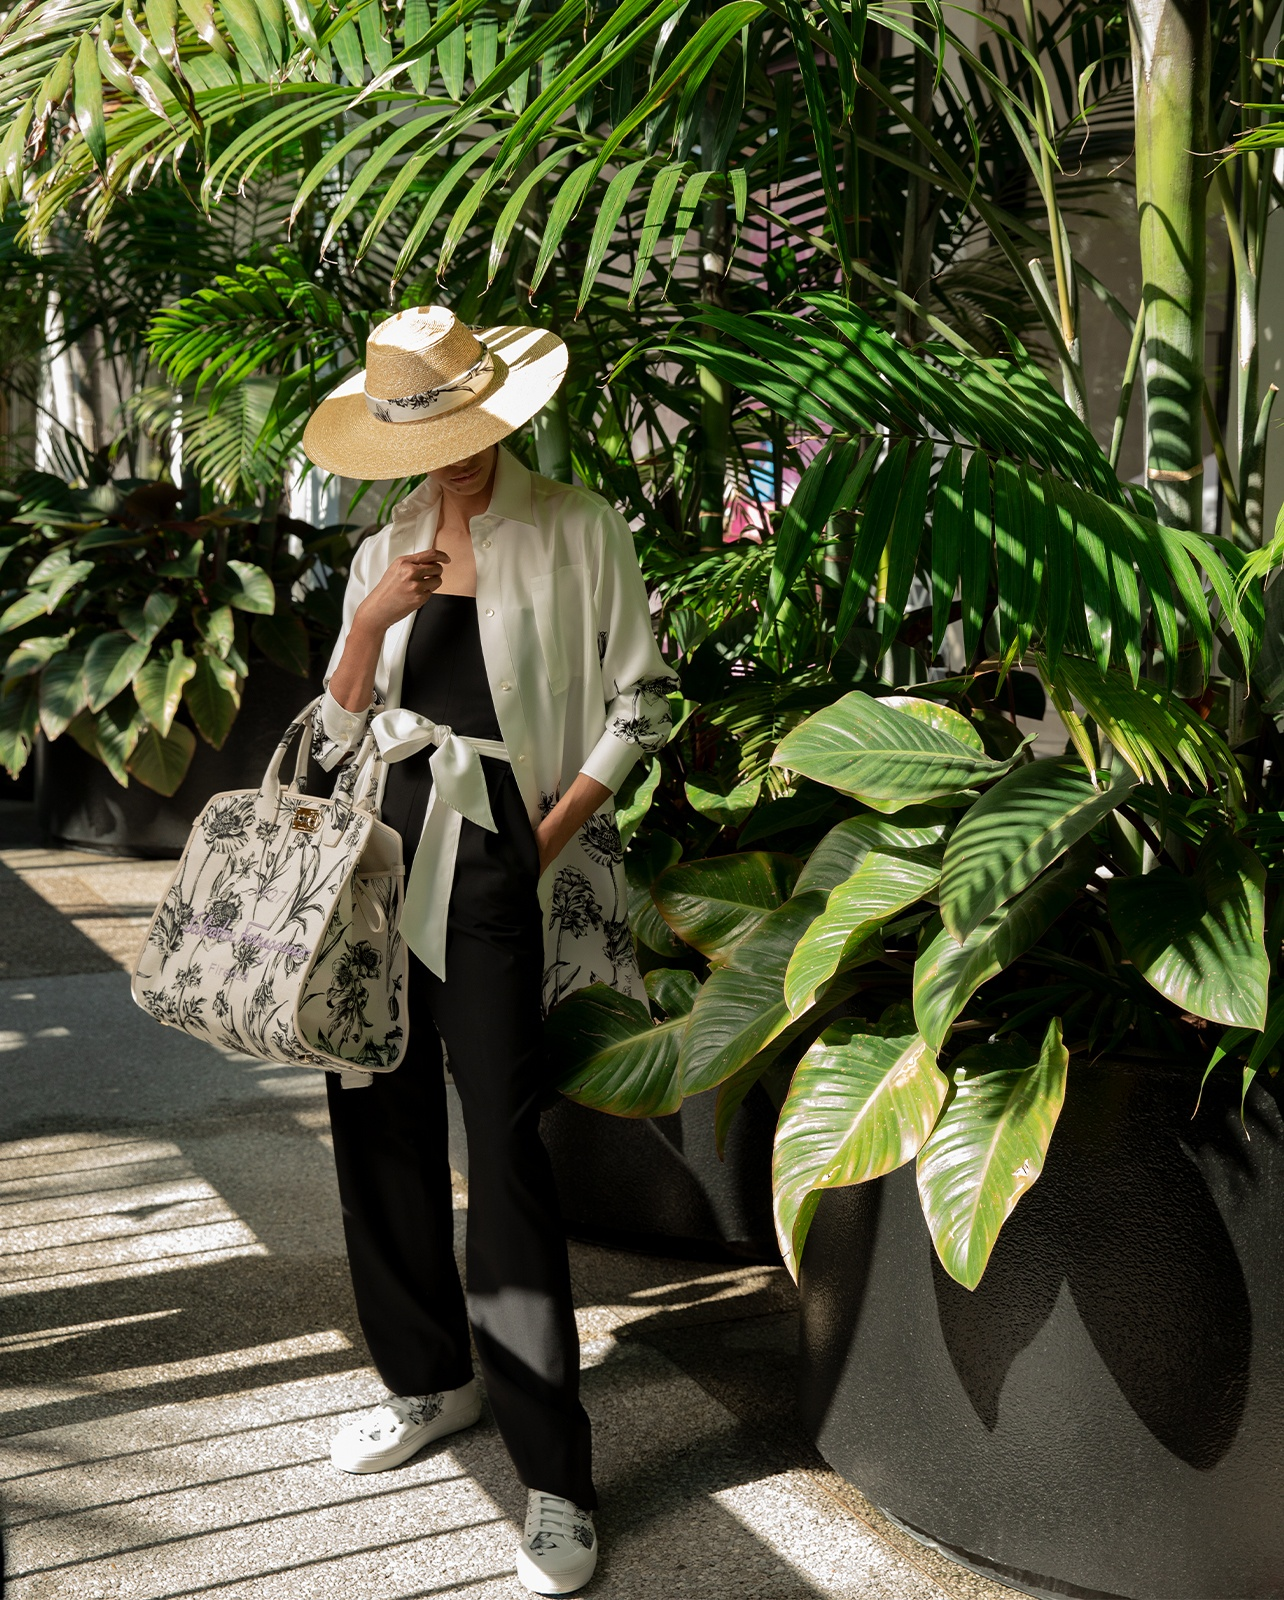 Salvatore Ferragamo black strapless jumpsuit, styled with silk kimono, hat, sneakers from the Tuscan Wildflower collection and the Miami handbag—a Bal Harbour Shops exclusive.